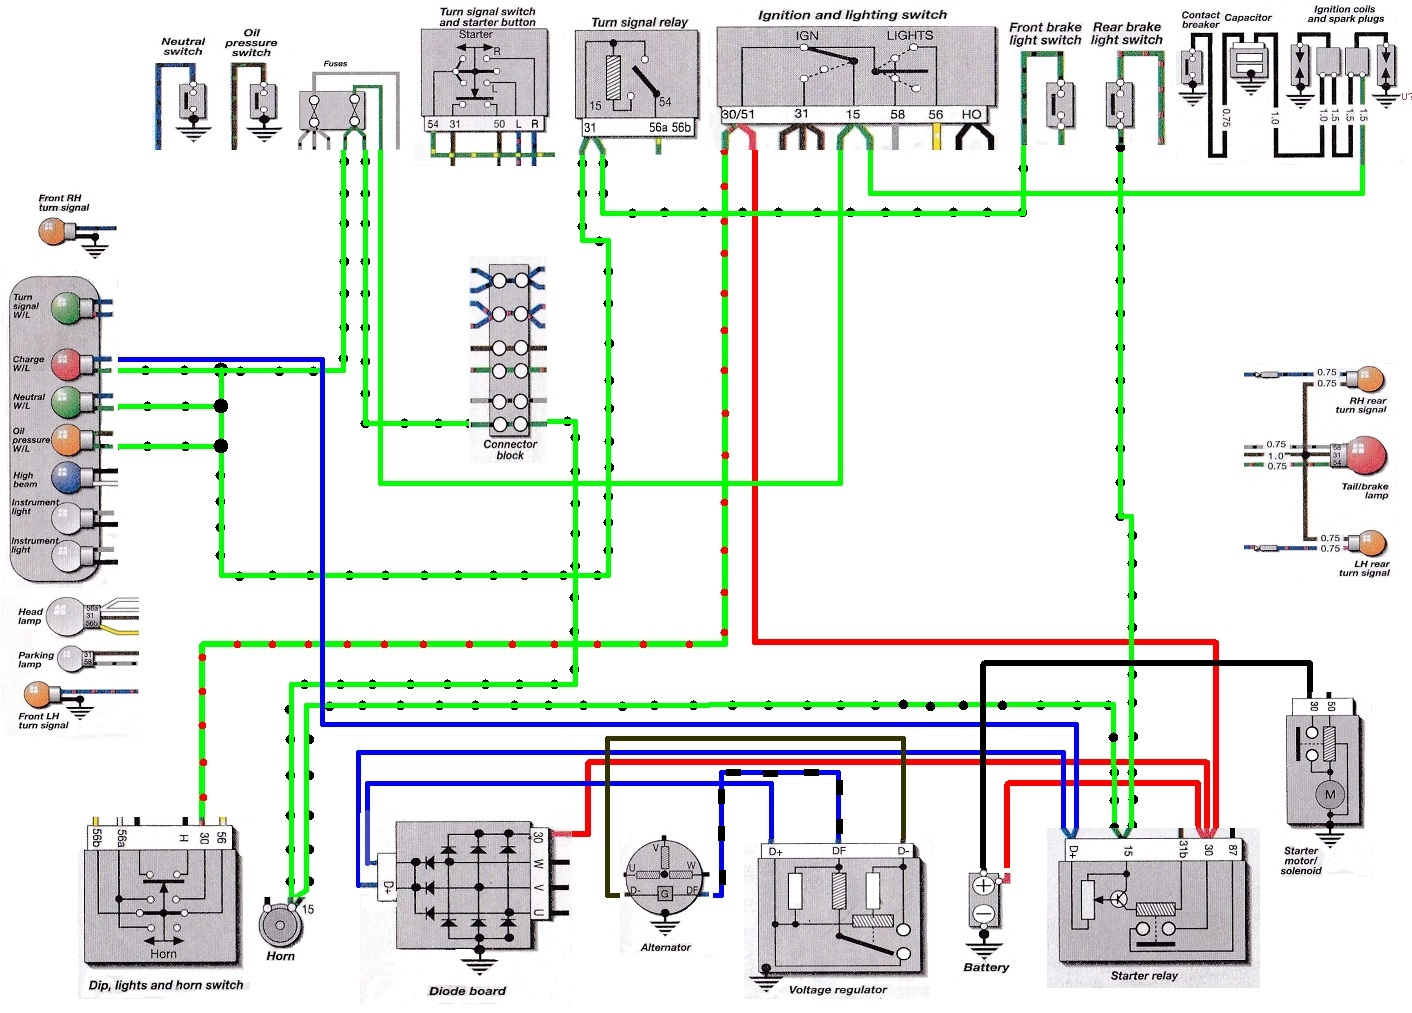 5 Series Electrical Components Brooks Airhead Garage Start Relay Wiring Diagram Partial Showing Blue Wires From Charge Indicator Lamp That Create Path To Ground At Starter Terminal D Click Enlarge